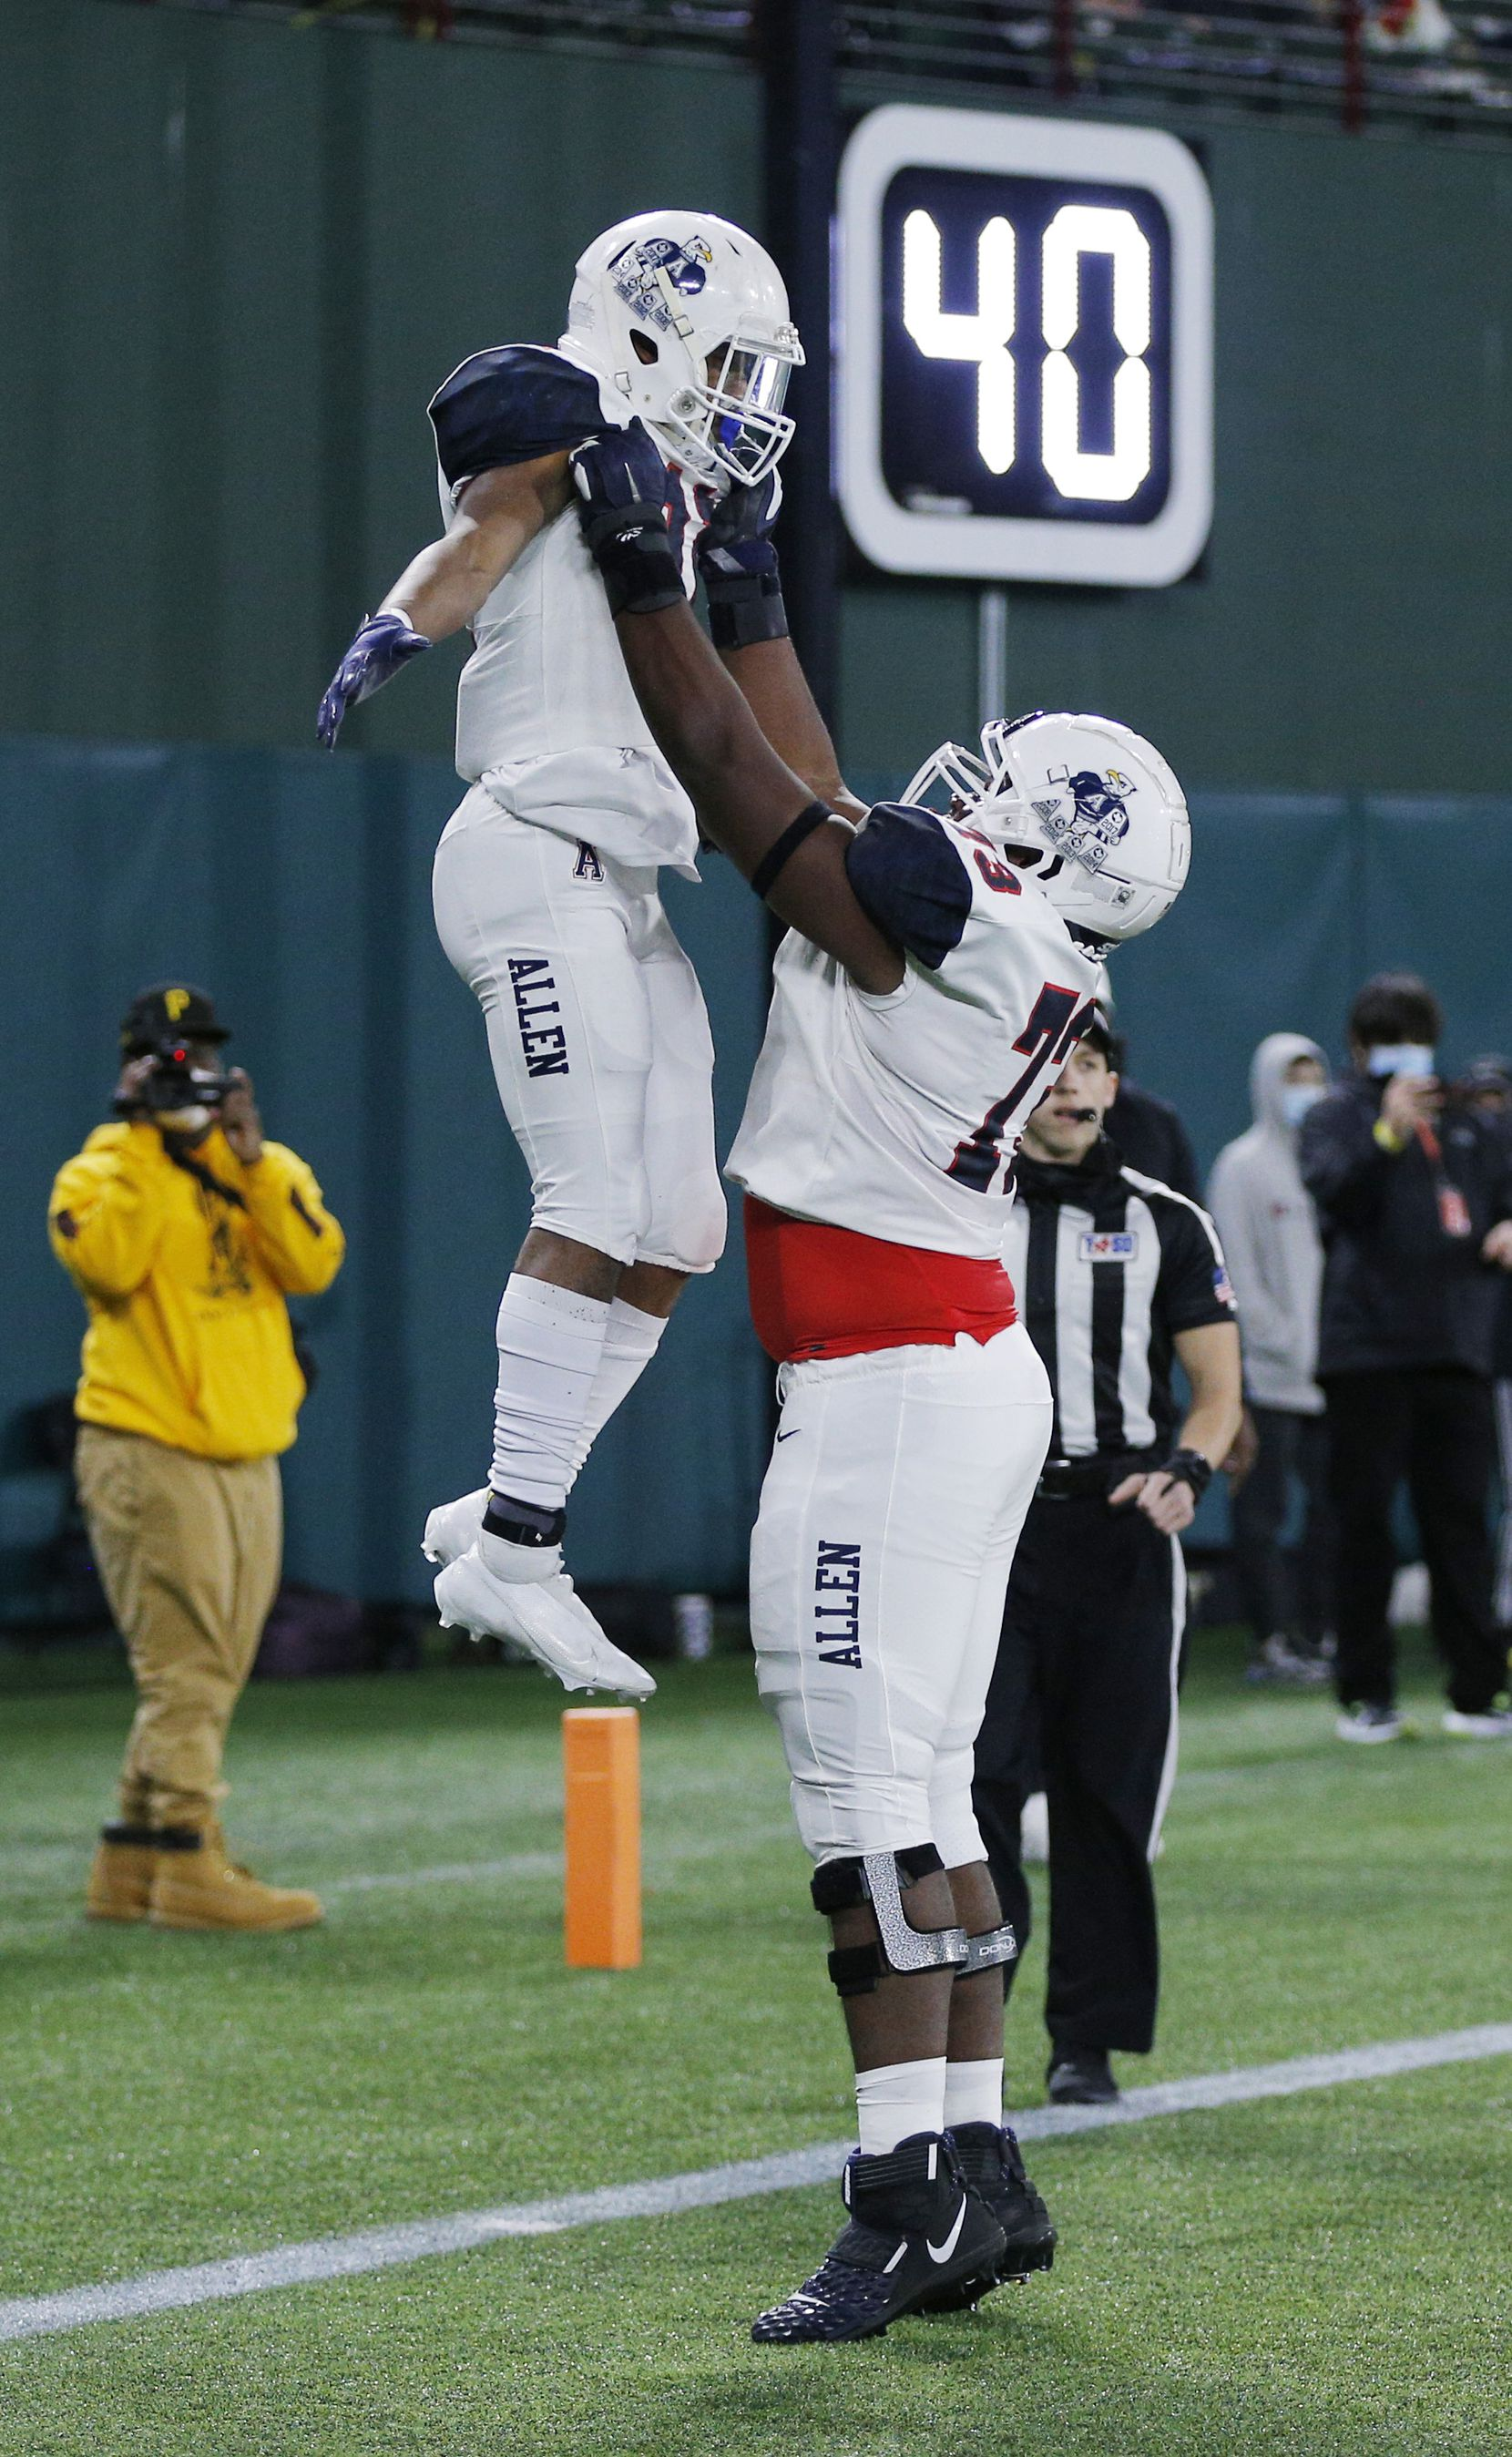 Allen senior vide receiver Jordan Johnson (11) is lifted into the air after scoring a touchdown by junior offensive lineman Neto Umeozulu (73) during the first half of a high school Class 6A Division I Region I semifinal football game against Euless Trinity at Globe Life Park in Arlington, Saturday, December 26, 2020. (Brandon Wade/Special Contributor)